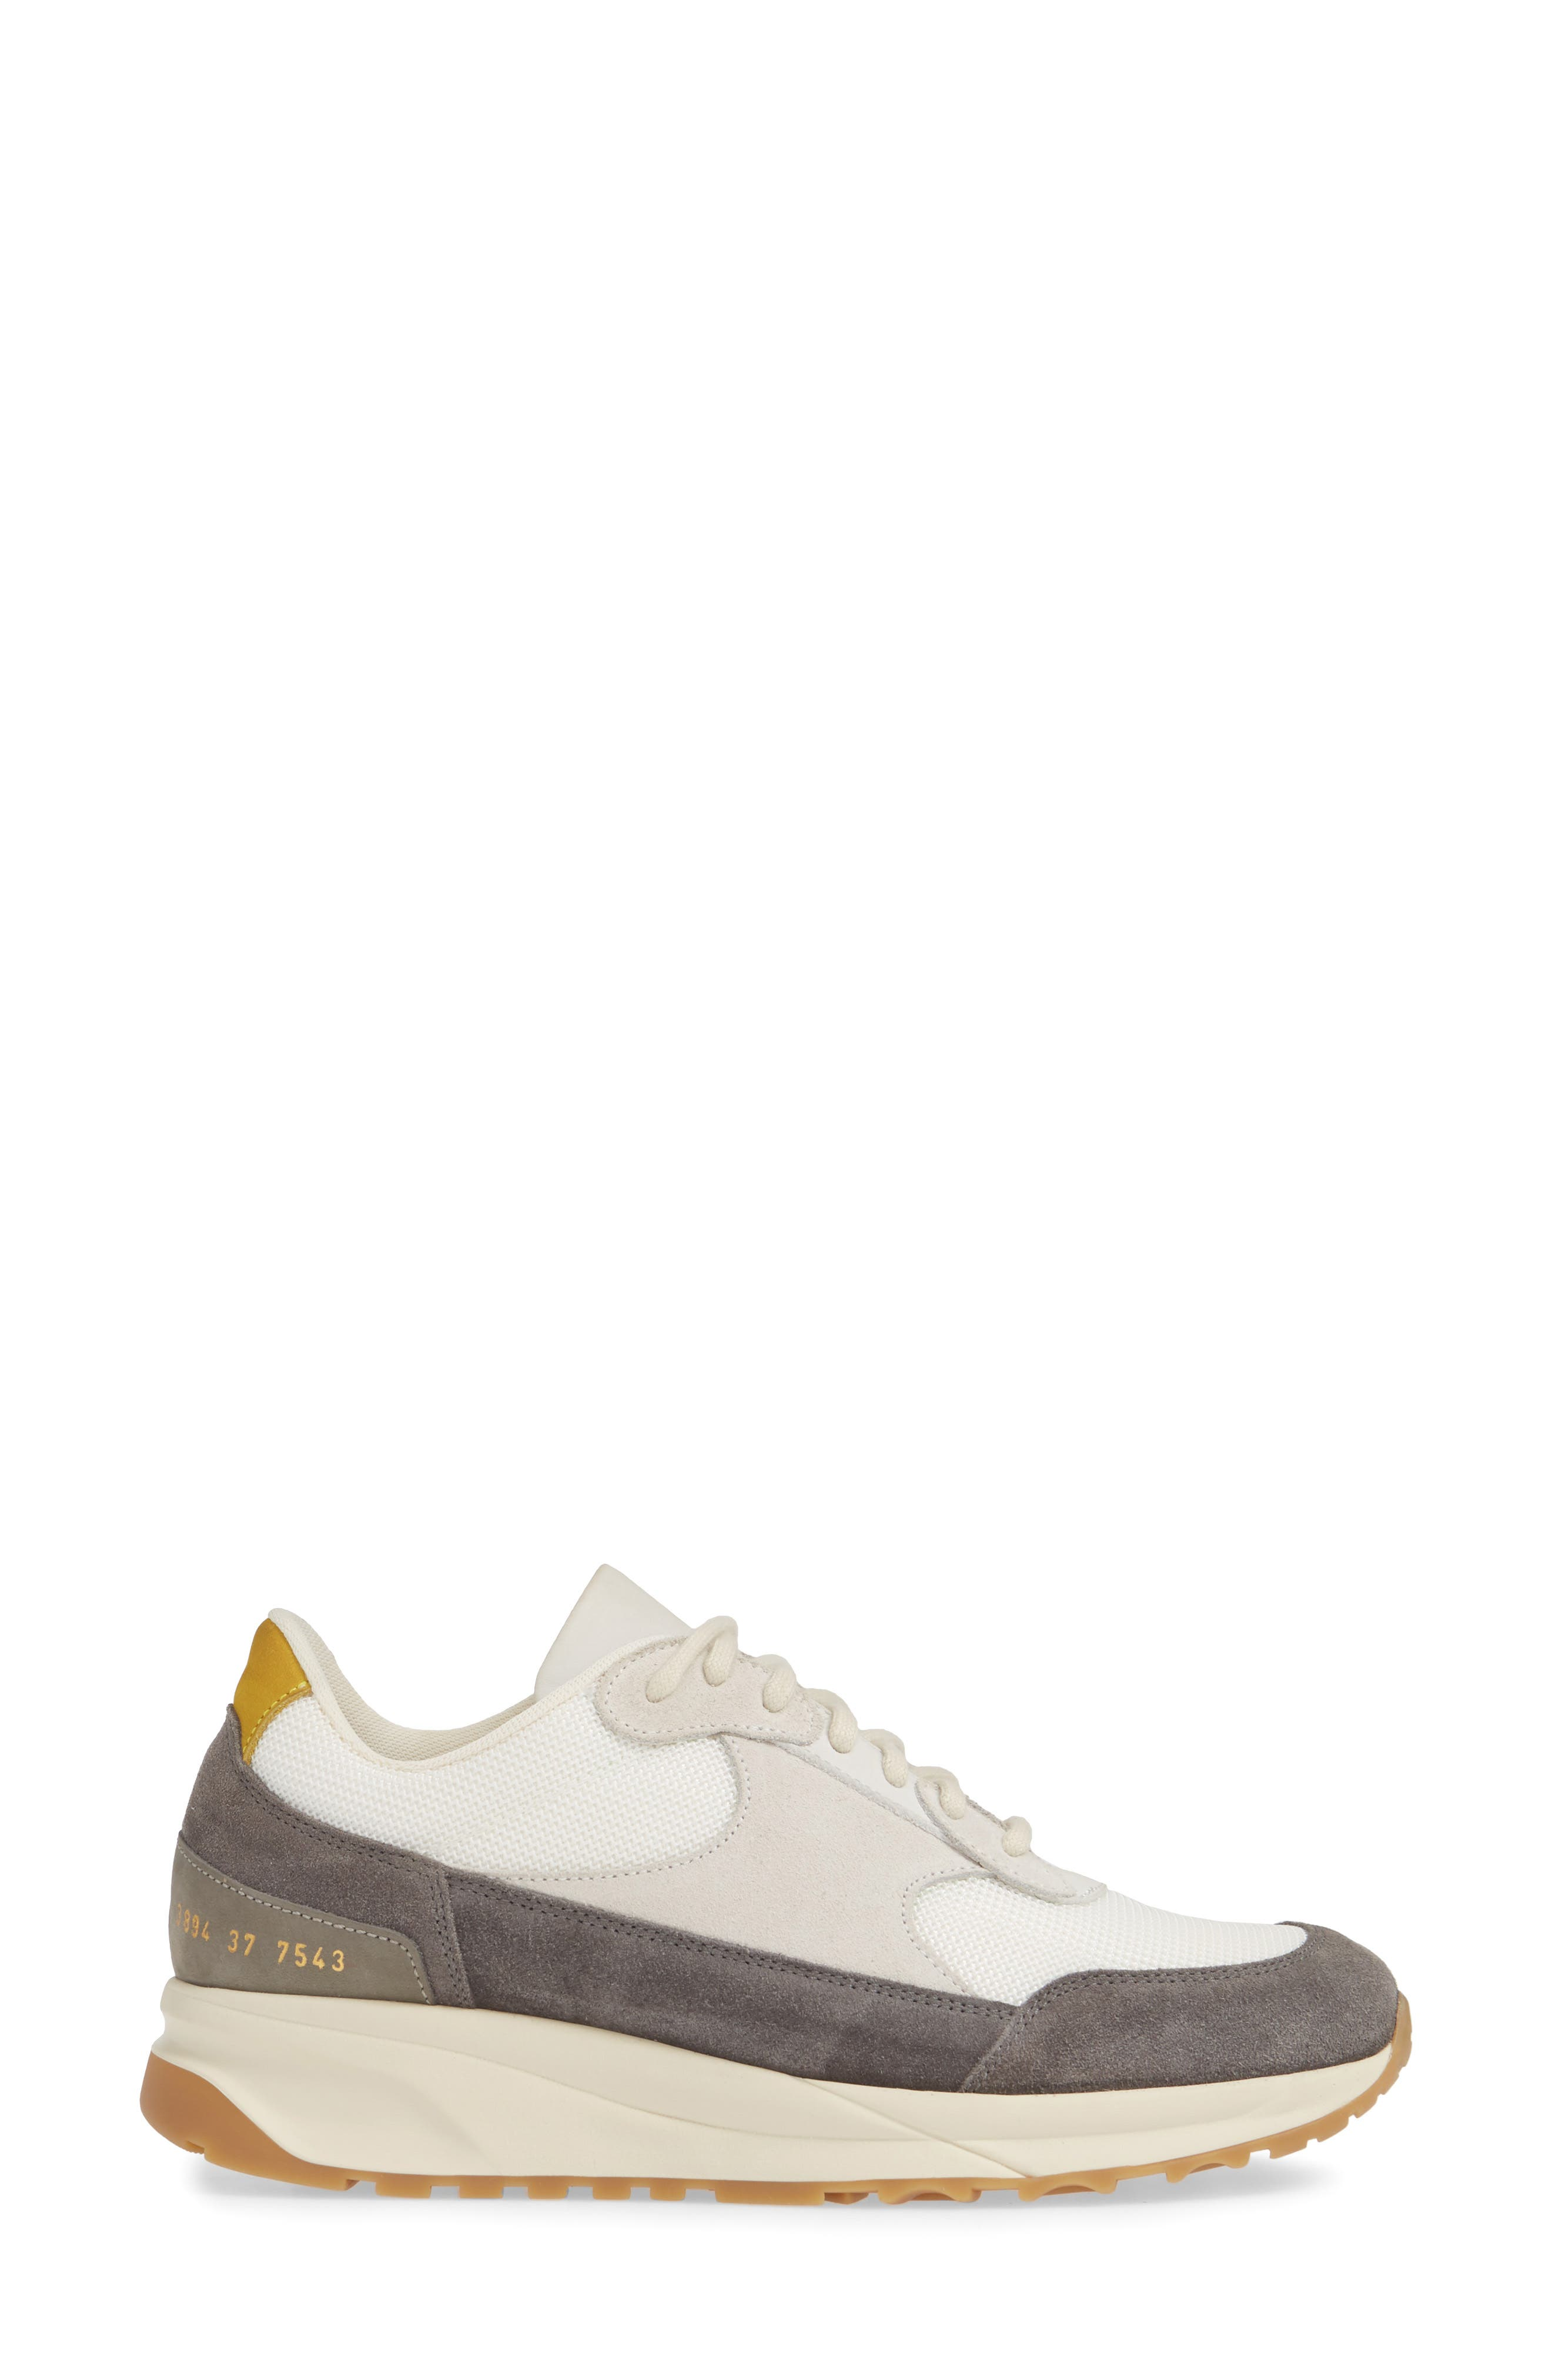 COMMON PROJECTS, New Track Sneaker, Alternate thumbnail 3, color, WHITE/ GREY